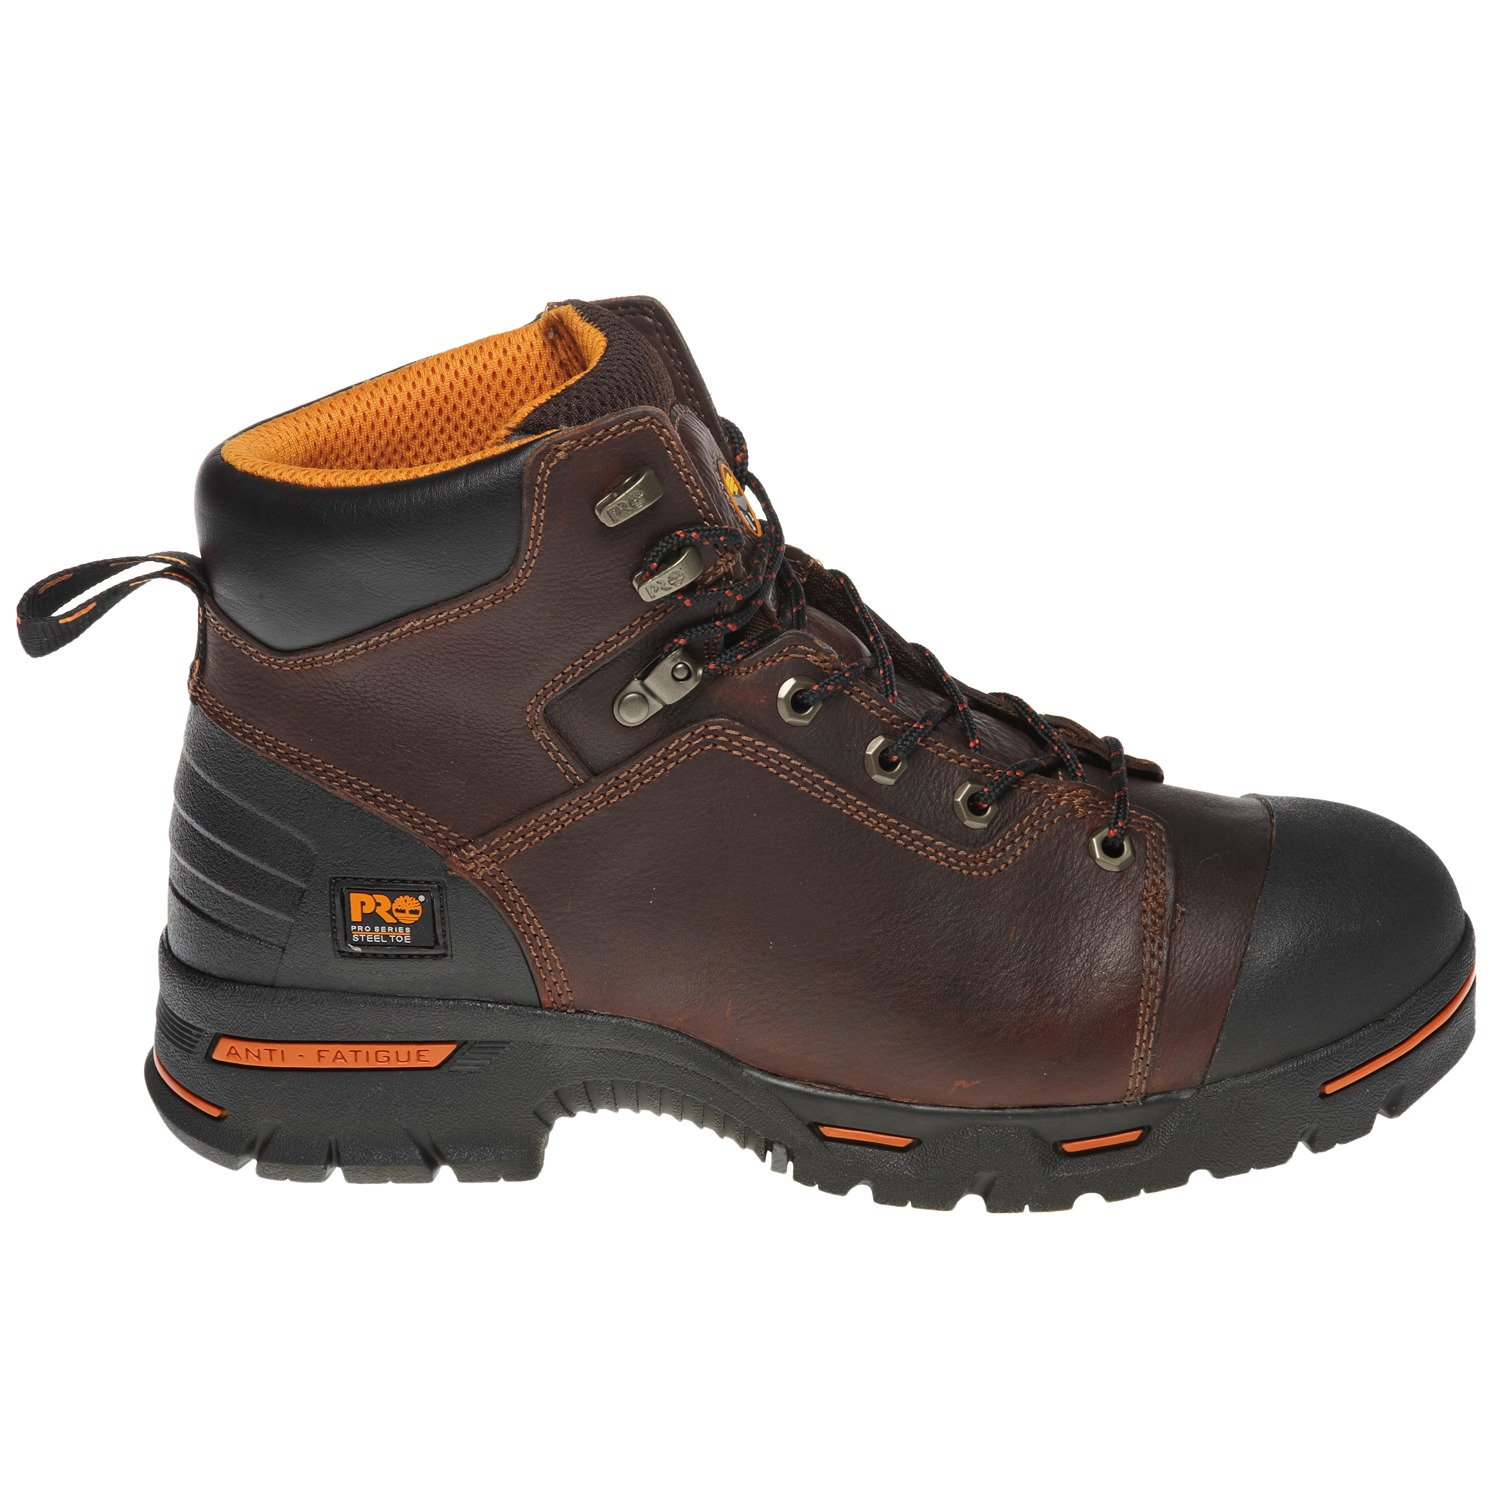 0bb376d8c36e1 Display product reviews for Timberland Men's Endurance 6 in EH Steel Toe  Lace Up Work Boots